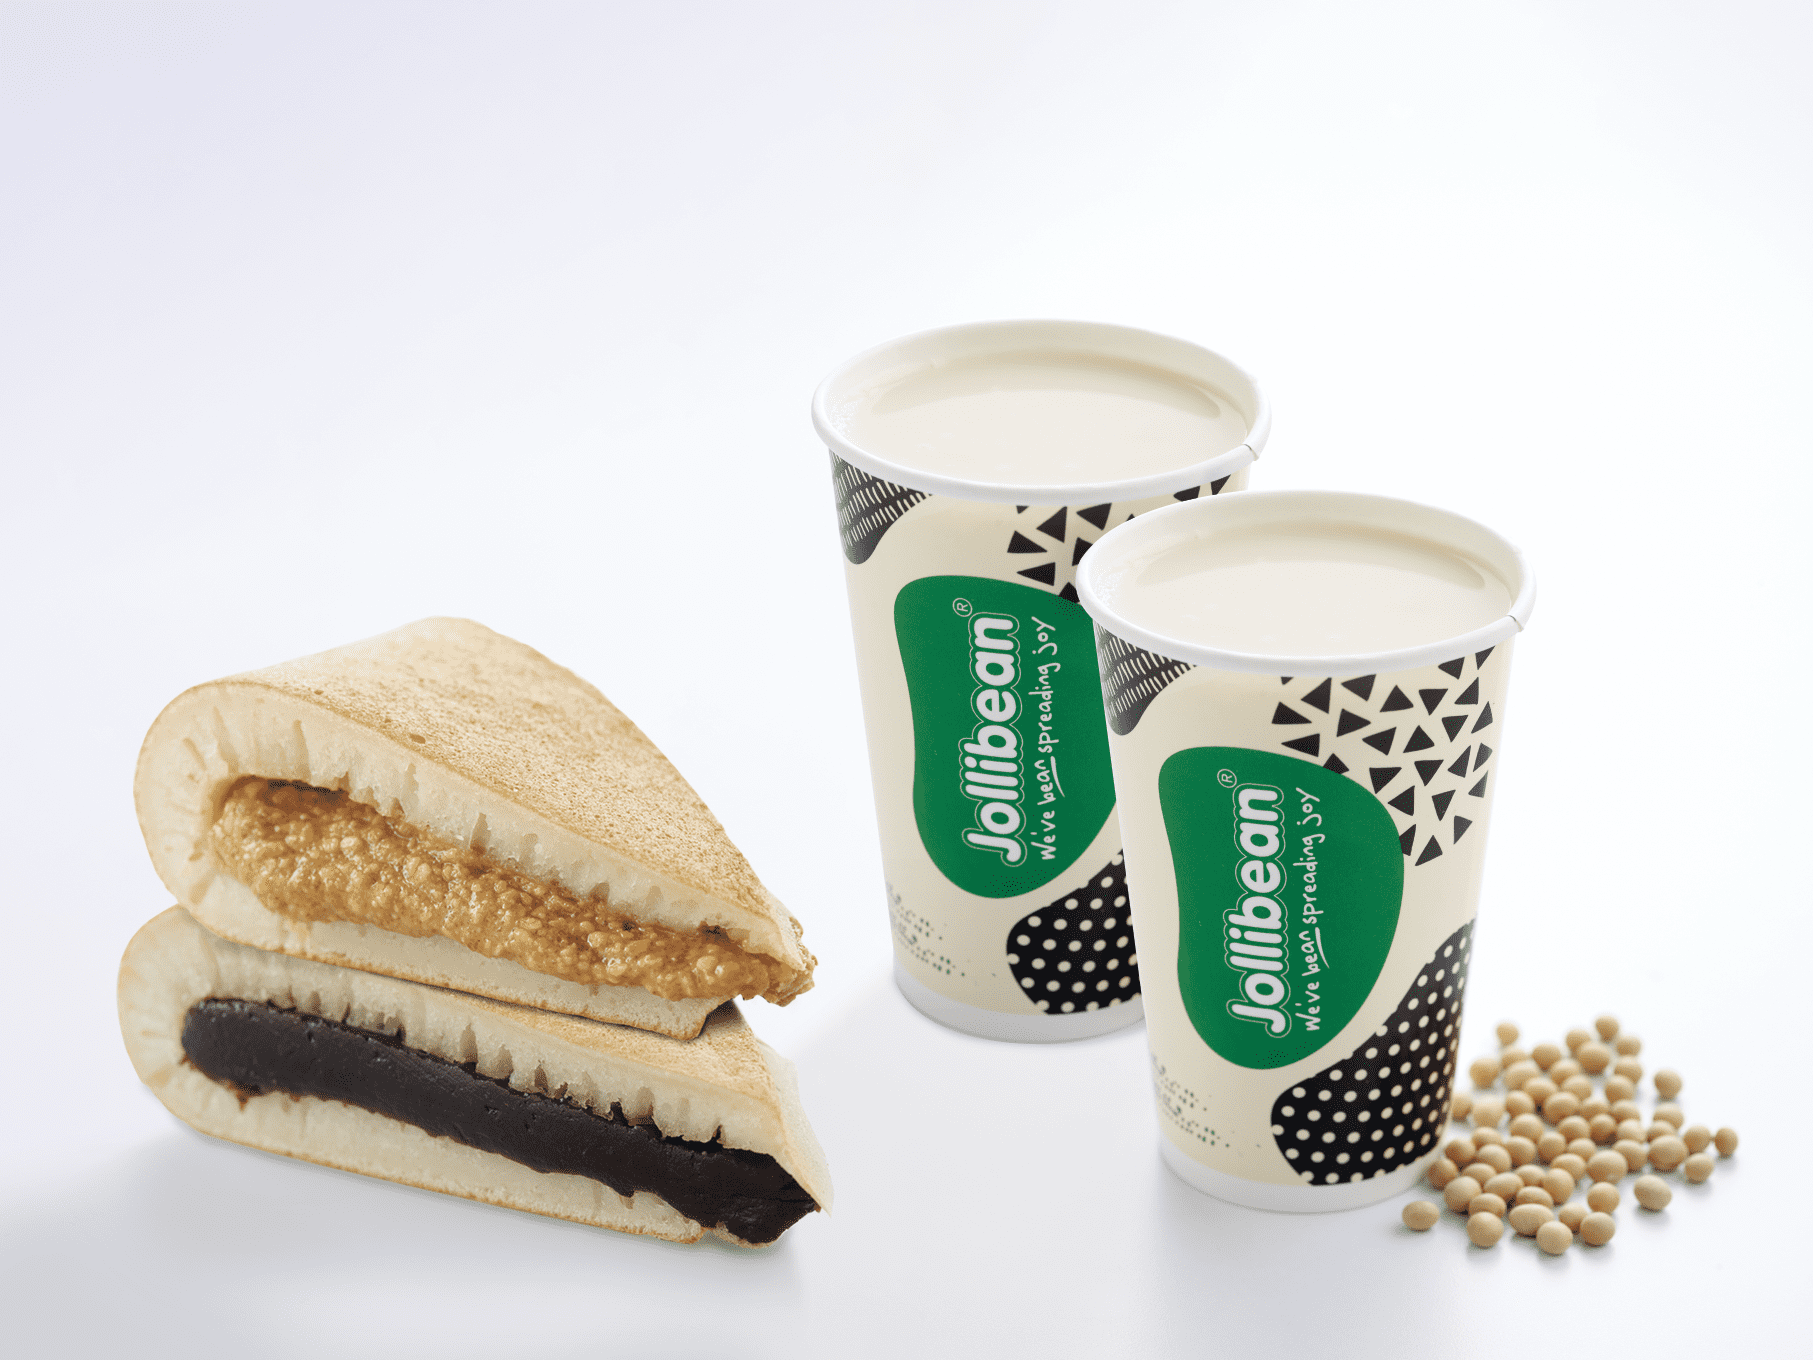 1 x Mee Chiang Kueh + 1 x Signature Soy Milk at Jollibean - Get Deals, Cashback and Rewards with ShopBack GO